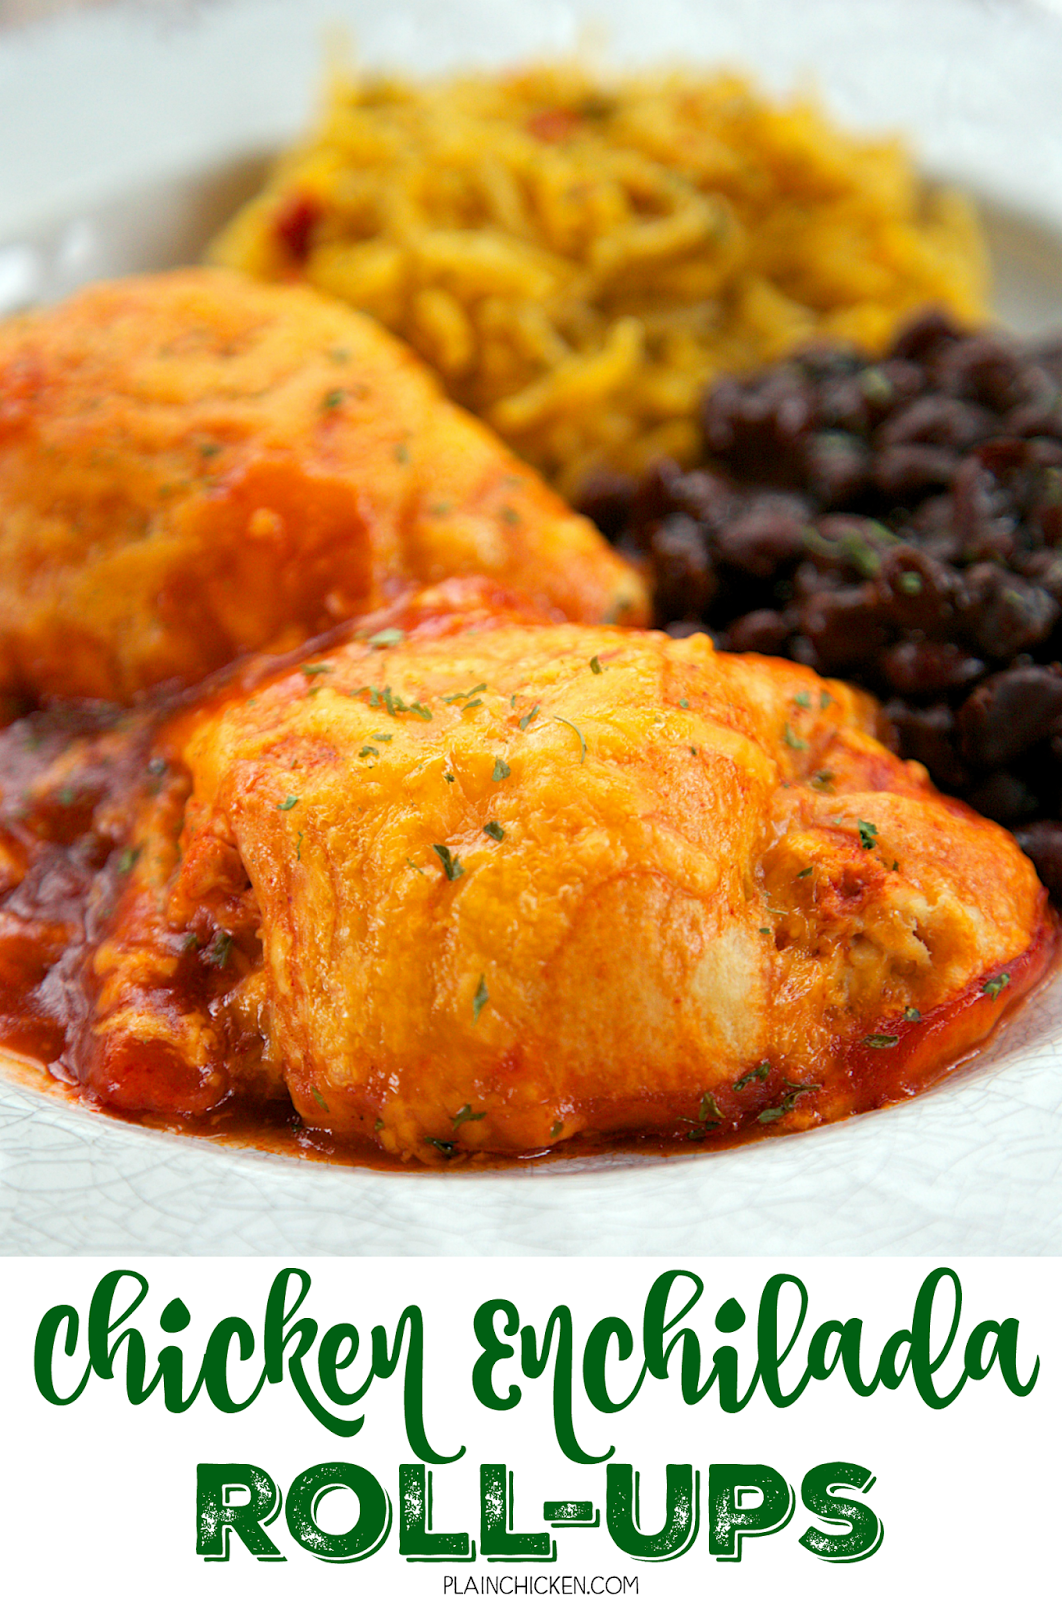 Chicken Enchilada Roll-Ups - chicken, cream cheese, southwest seasoning, cheddar cheese, wrapped in crescent rolls and baked in enchilada sauce. SO good. Serve with some black beans and Mexican rice or a salad. We ate this 2 weeks in a row! Quick weeknight meal!